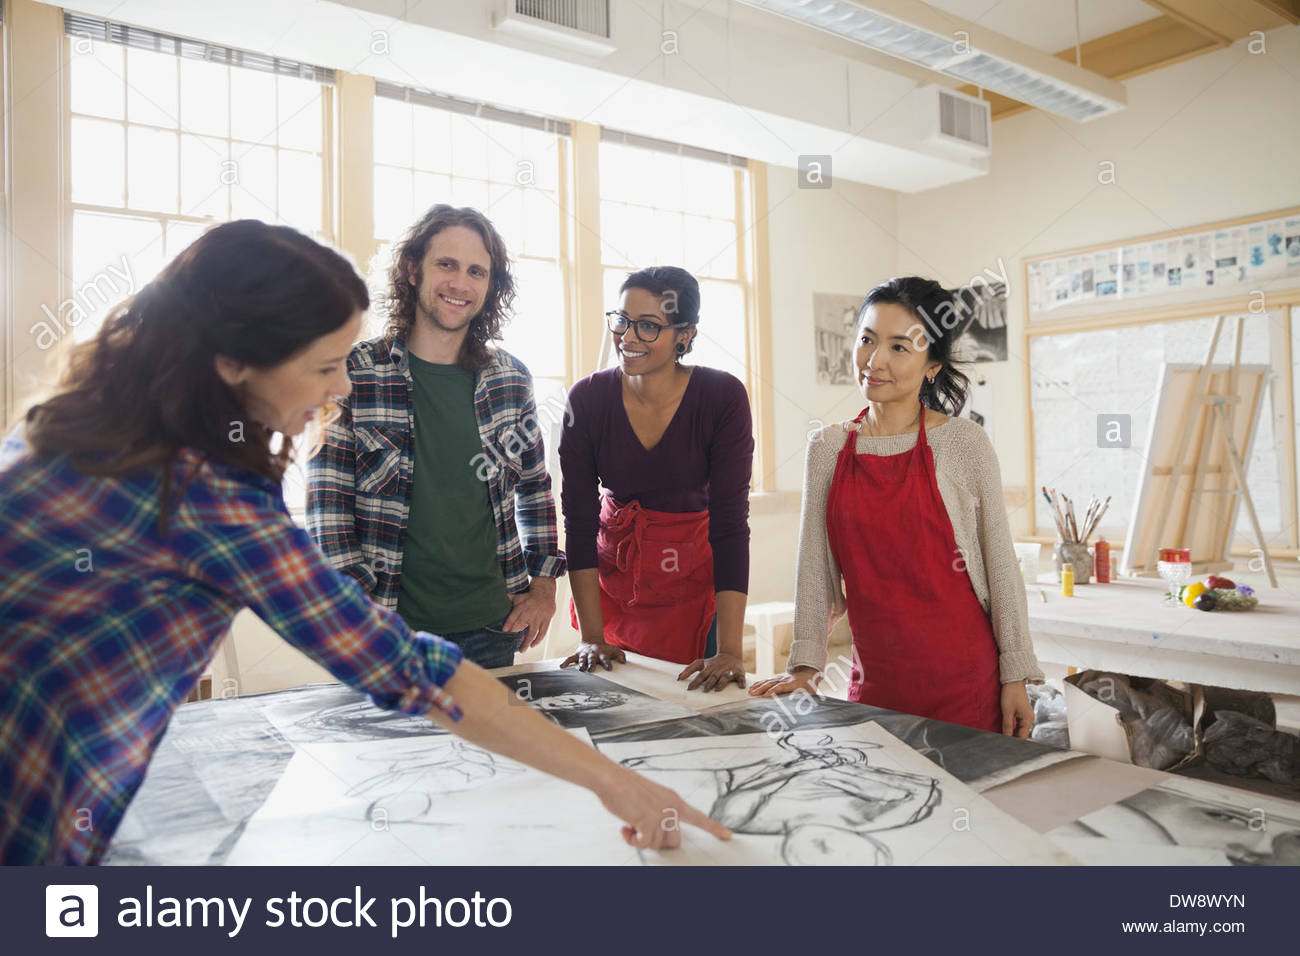 Students analyzing charcoal drawings in art studio - Stock Image